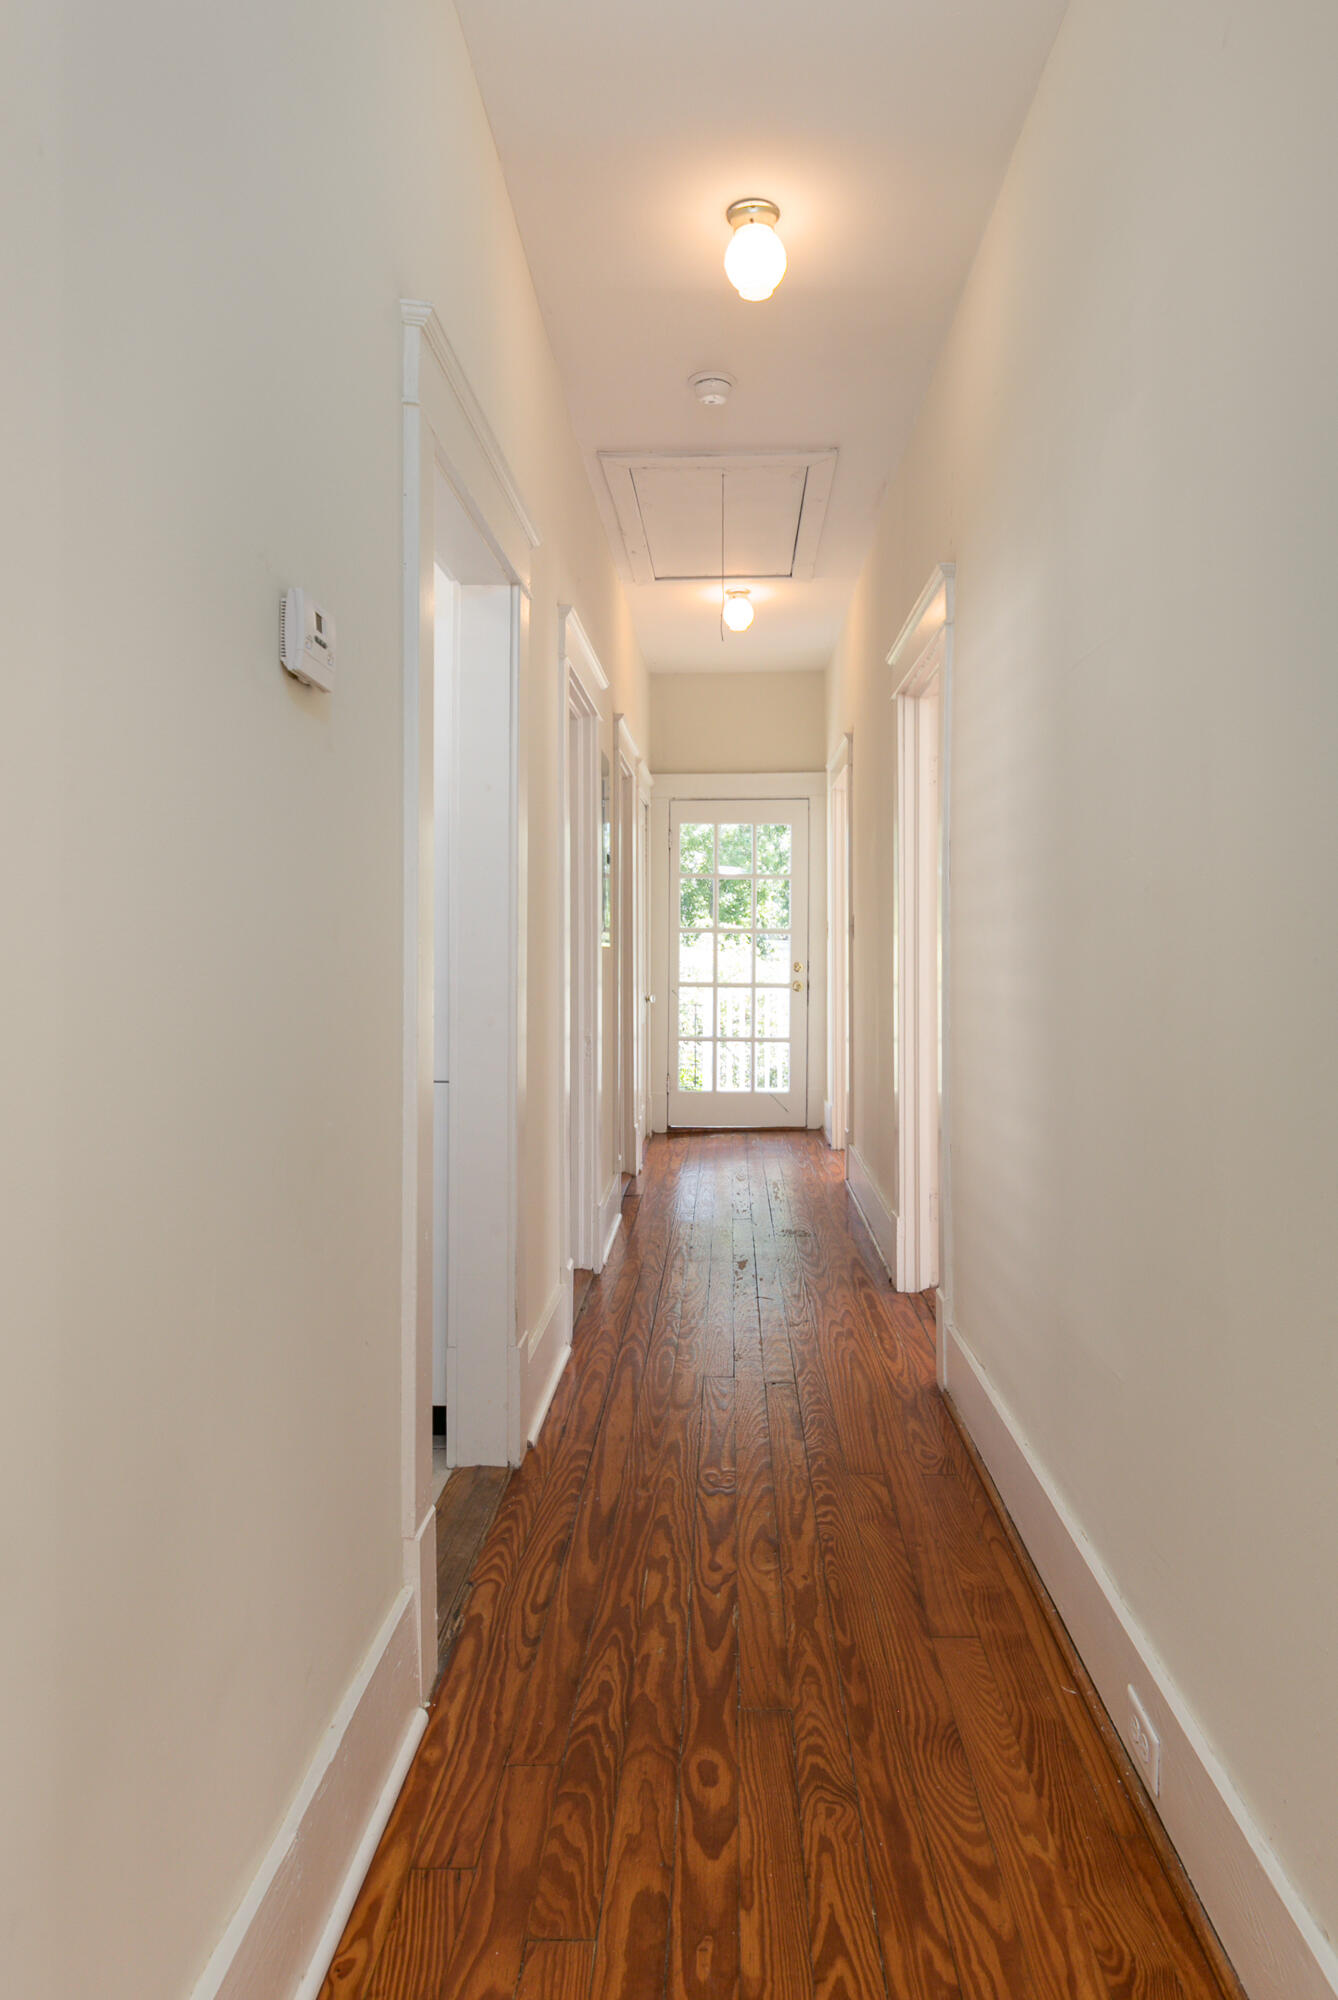 South of Broad Homes For Sale - 22 Council, Charleston, SC - 1